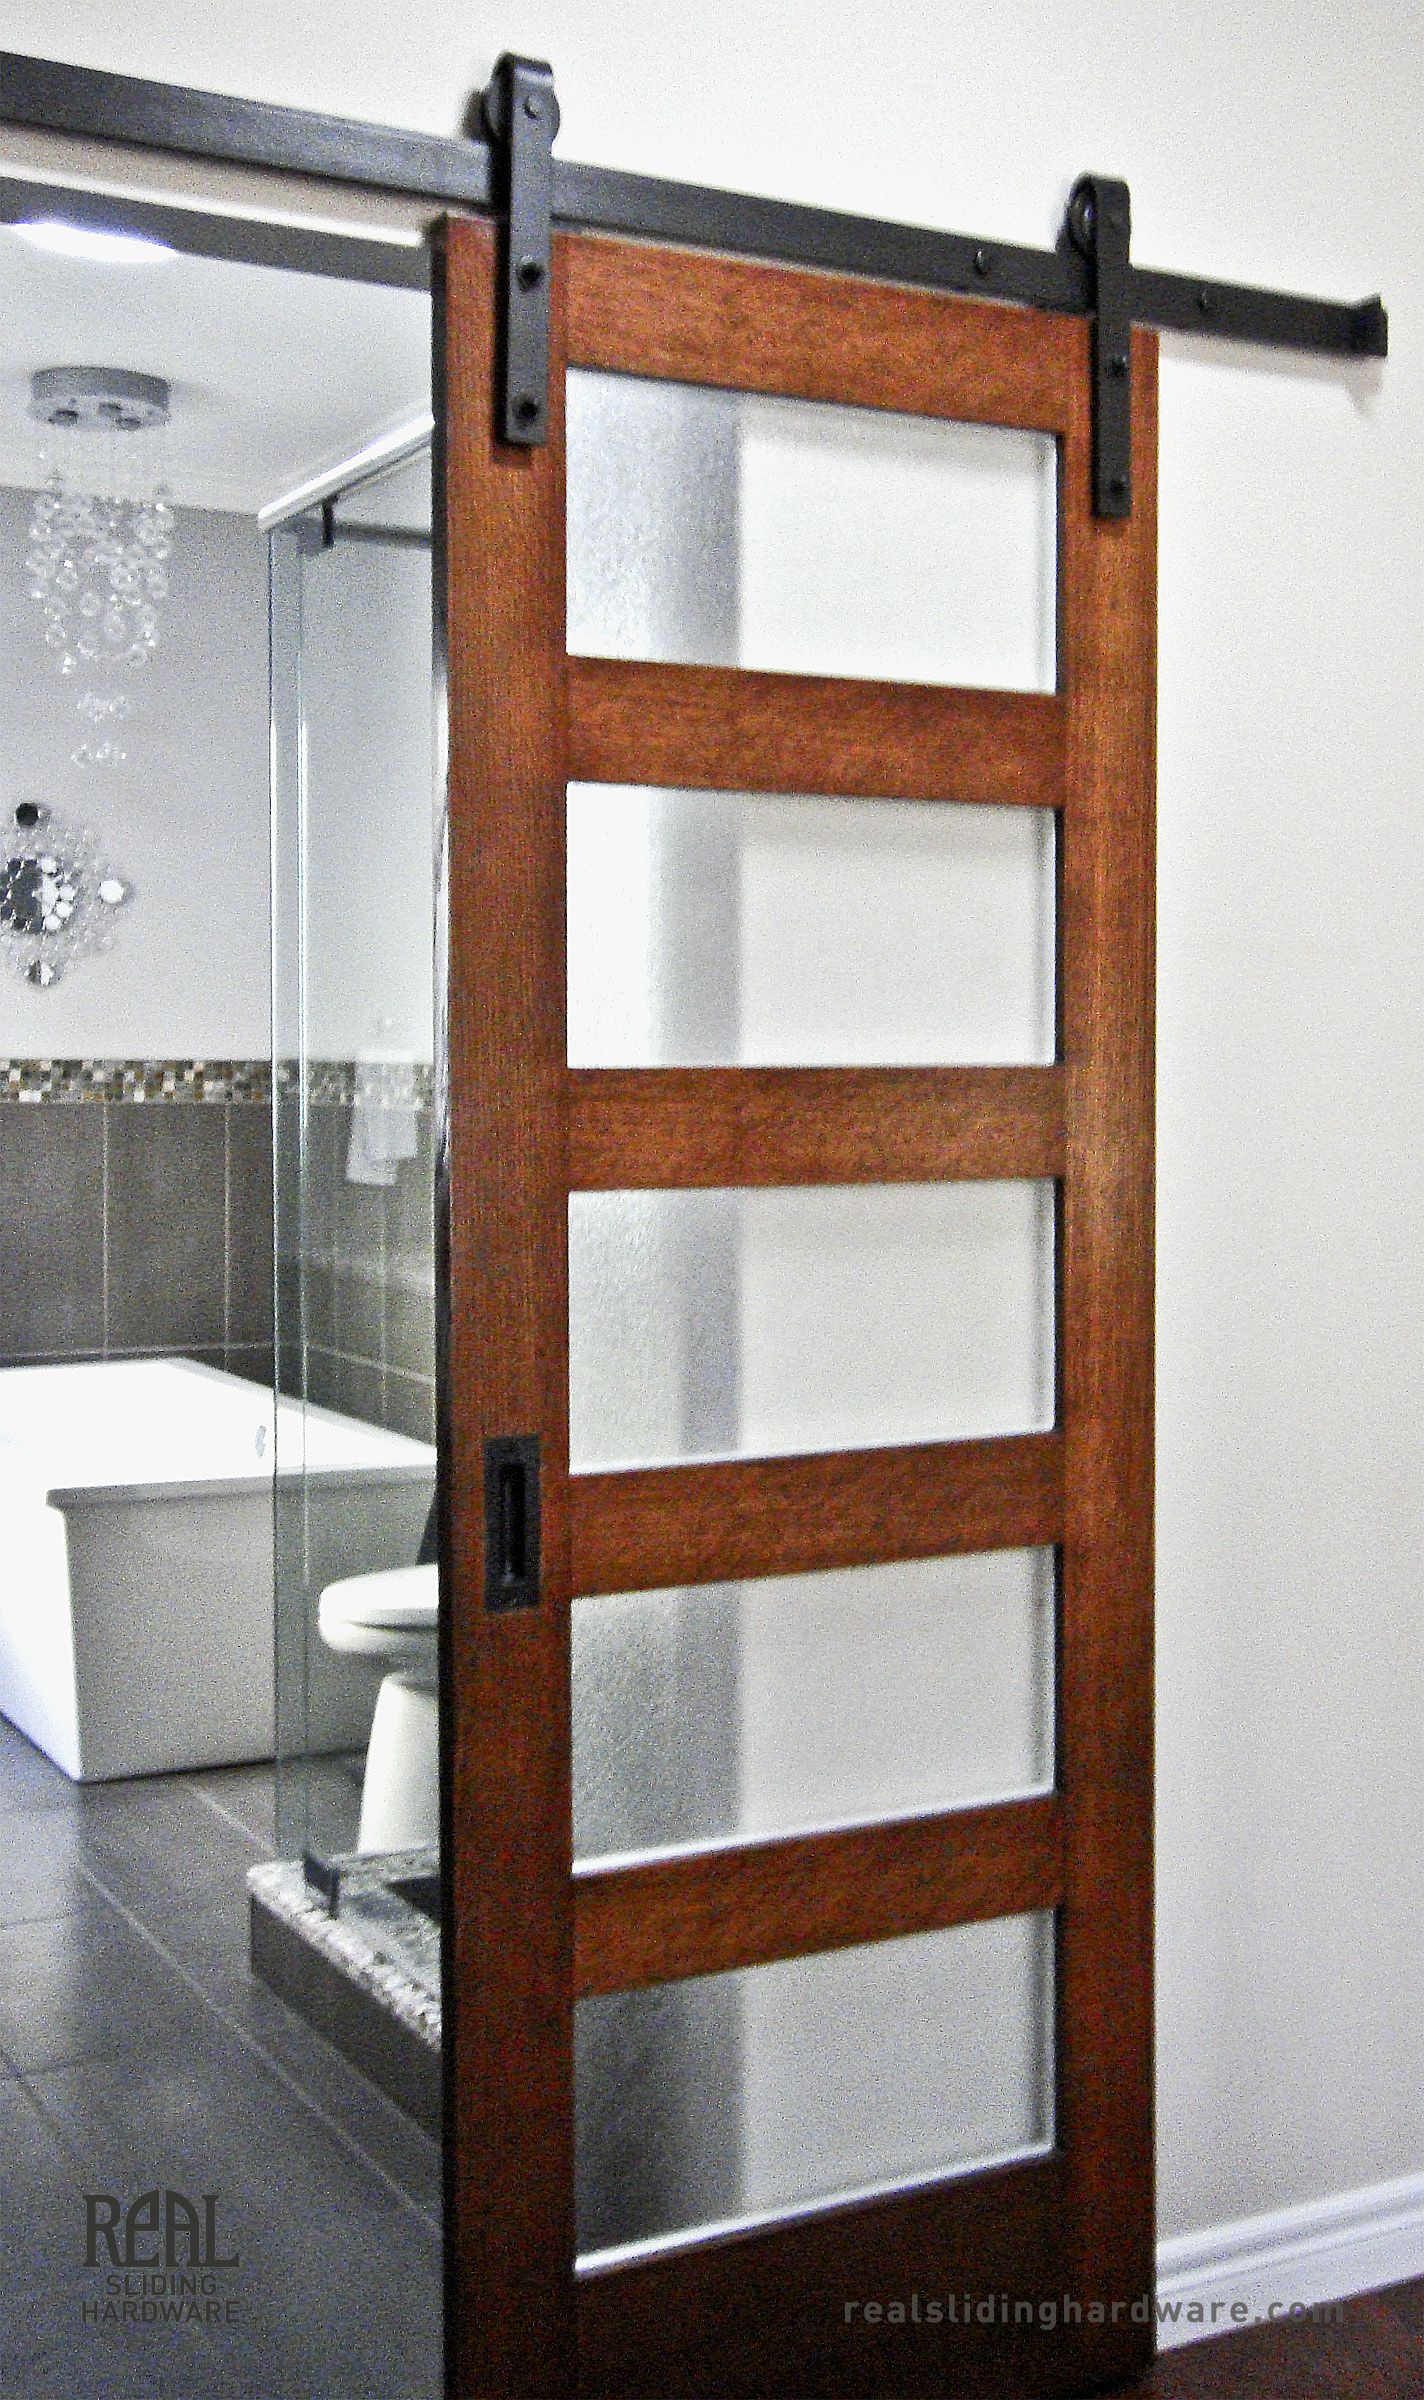 Master Bathroom Sliding Barn Door This Is The Master Bathroom Divider For The Master Bed Room Bathroom Barn Door Interior Barn Doors Barn Door Designs